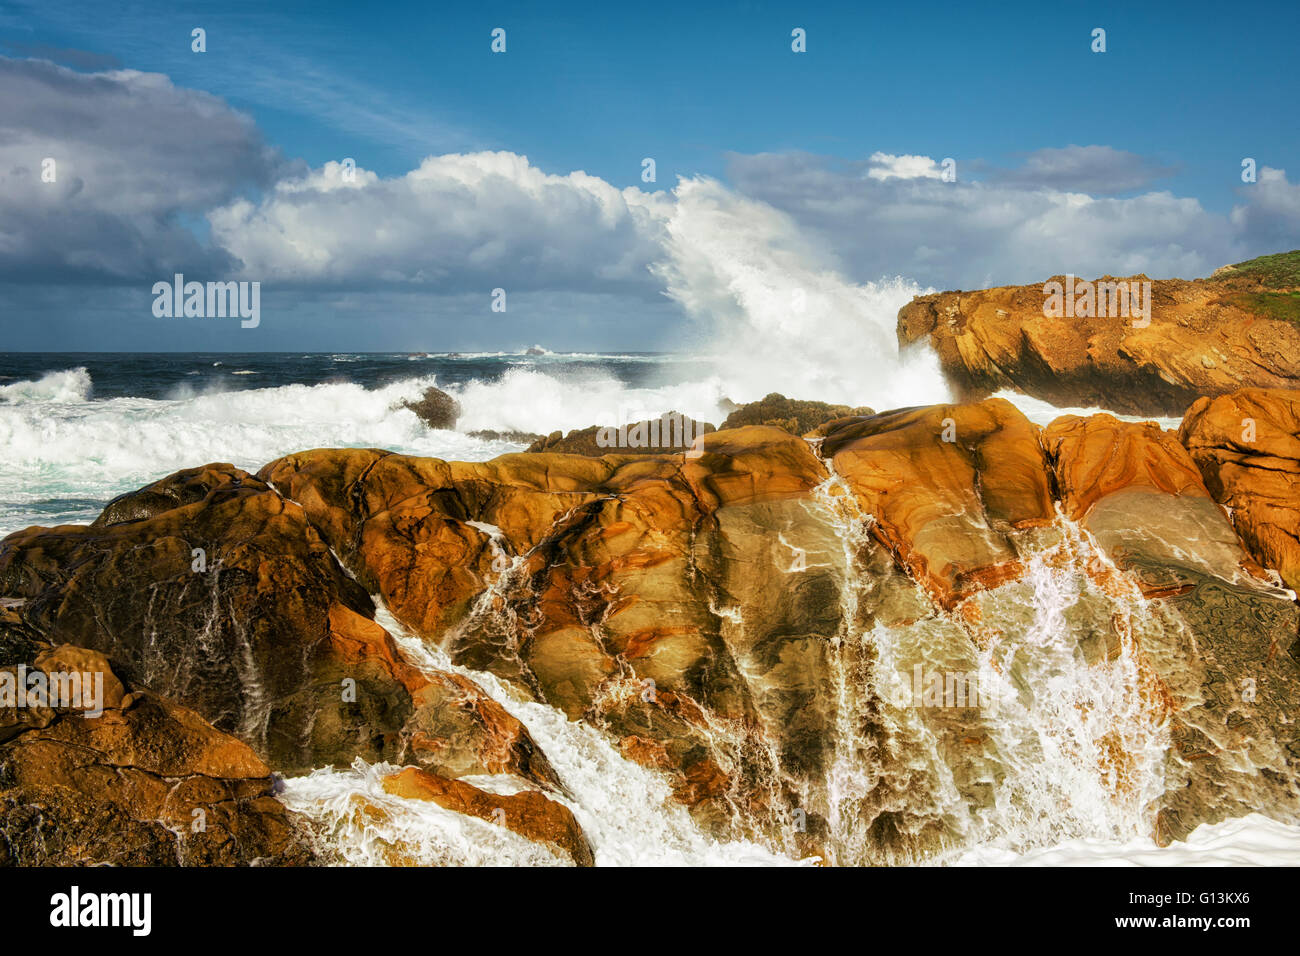 Crashing waves and high surf pound the sandstone cliffs of Point Lobos State Natural Reserve on California's Big - Stock Image